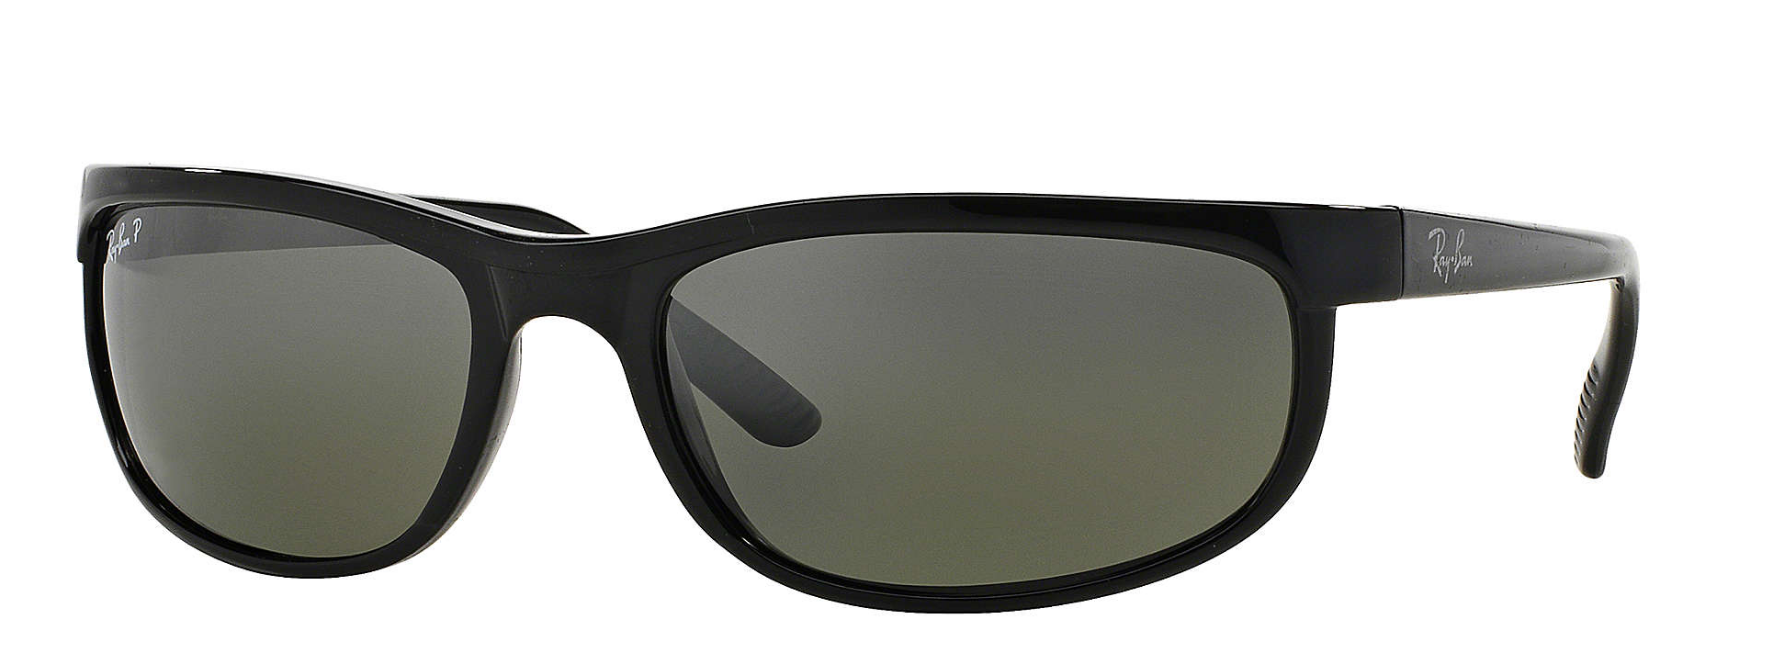 Predator 2 Black, Grey Mirror Polarized 62mm